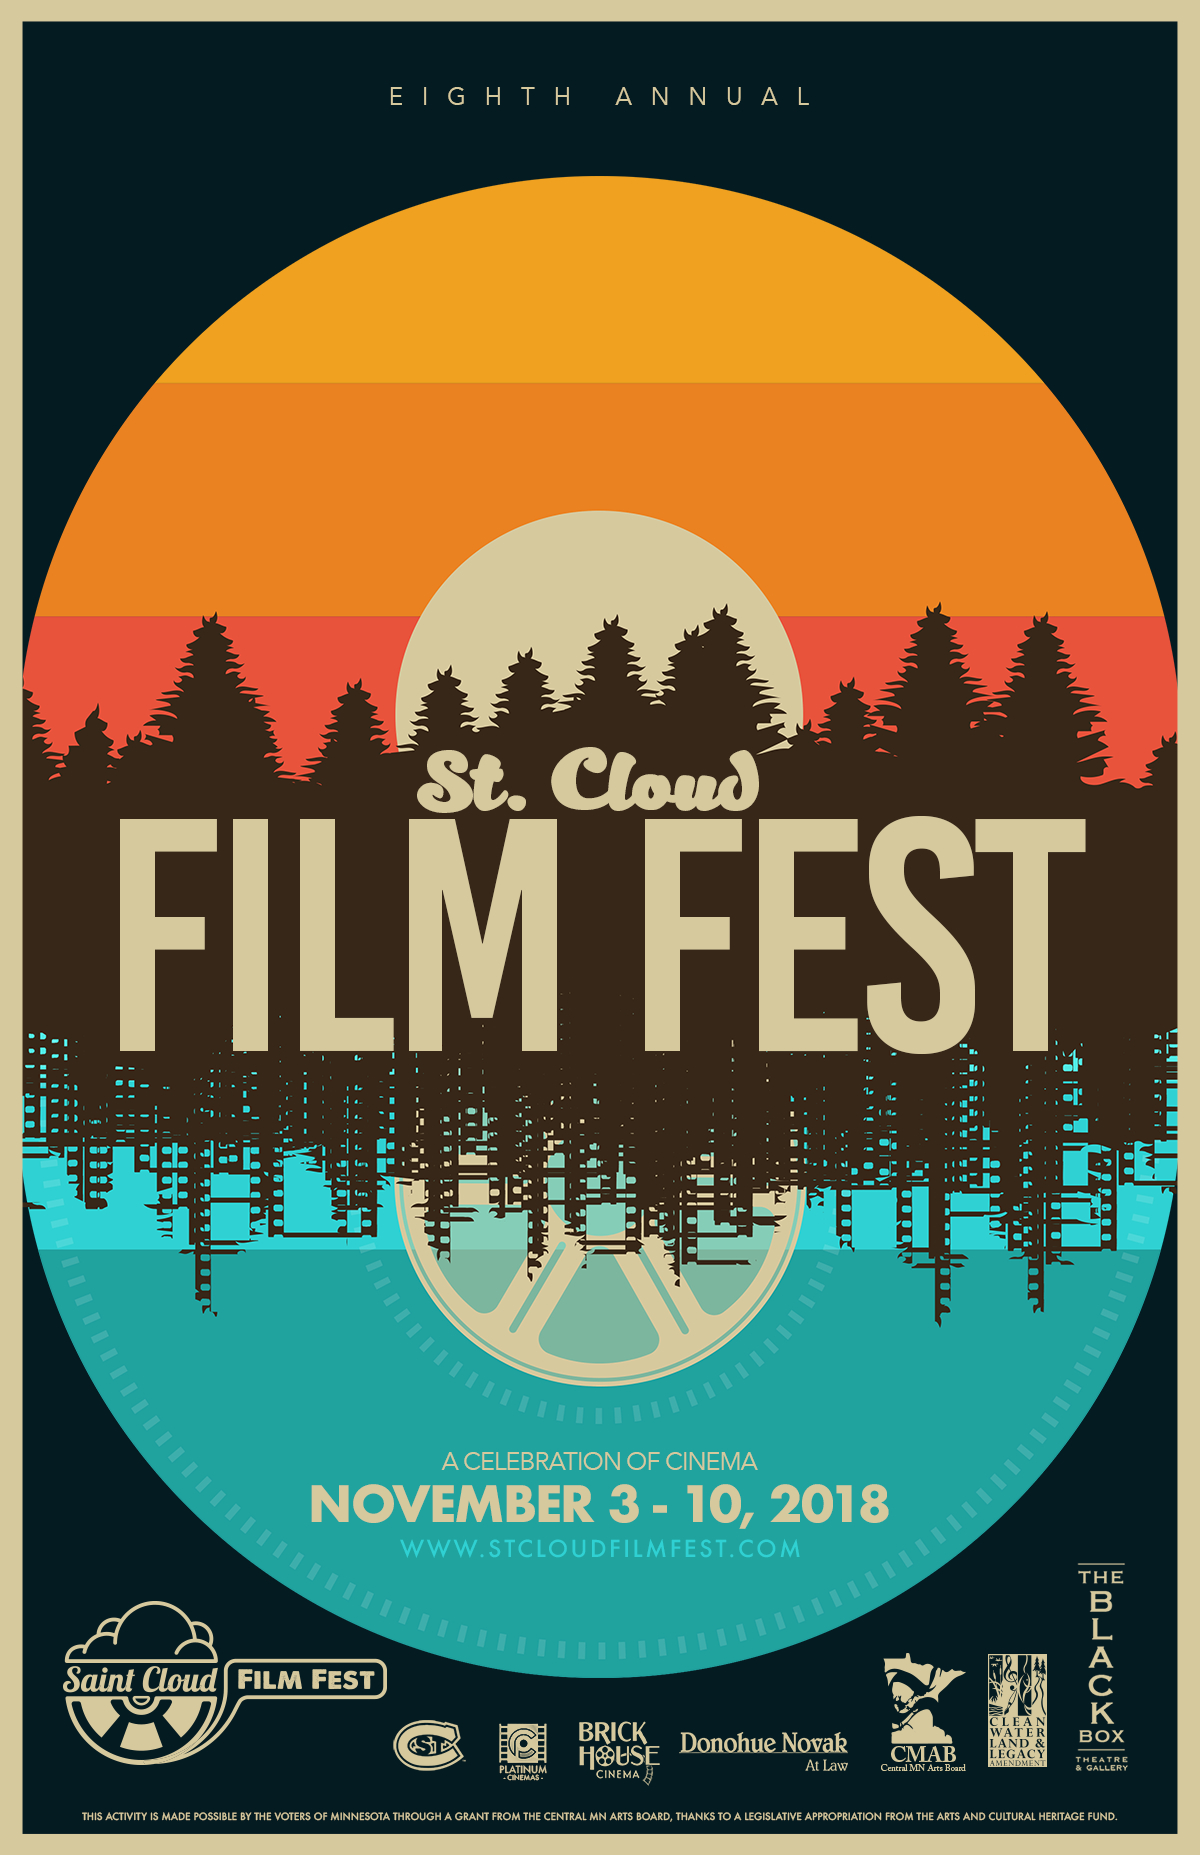 St. Cloud Film Fest | 2018 Program